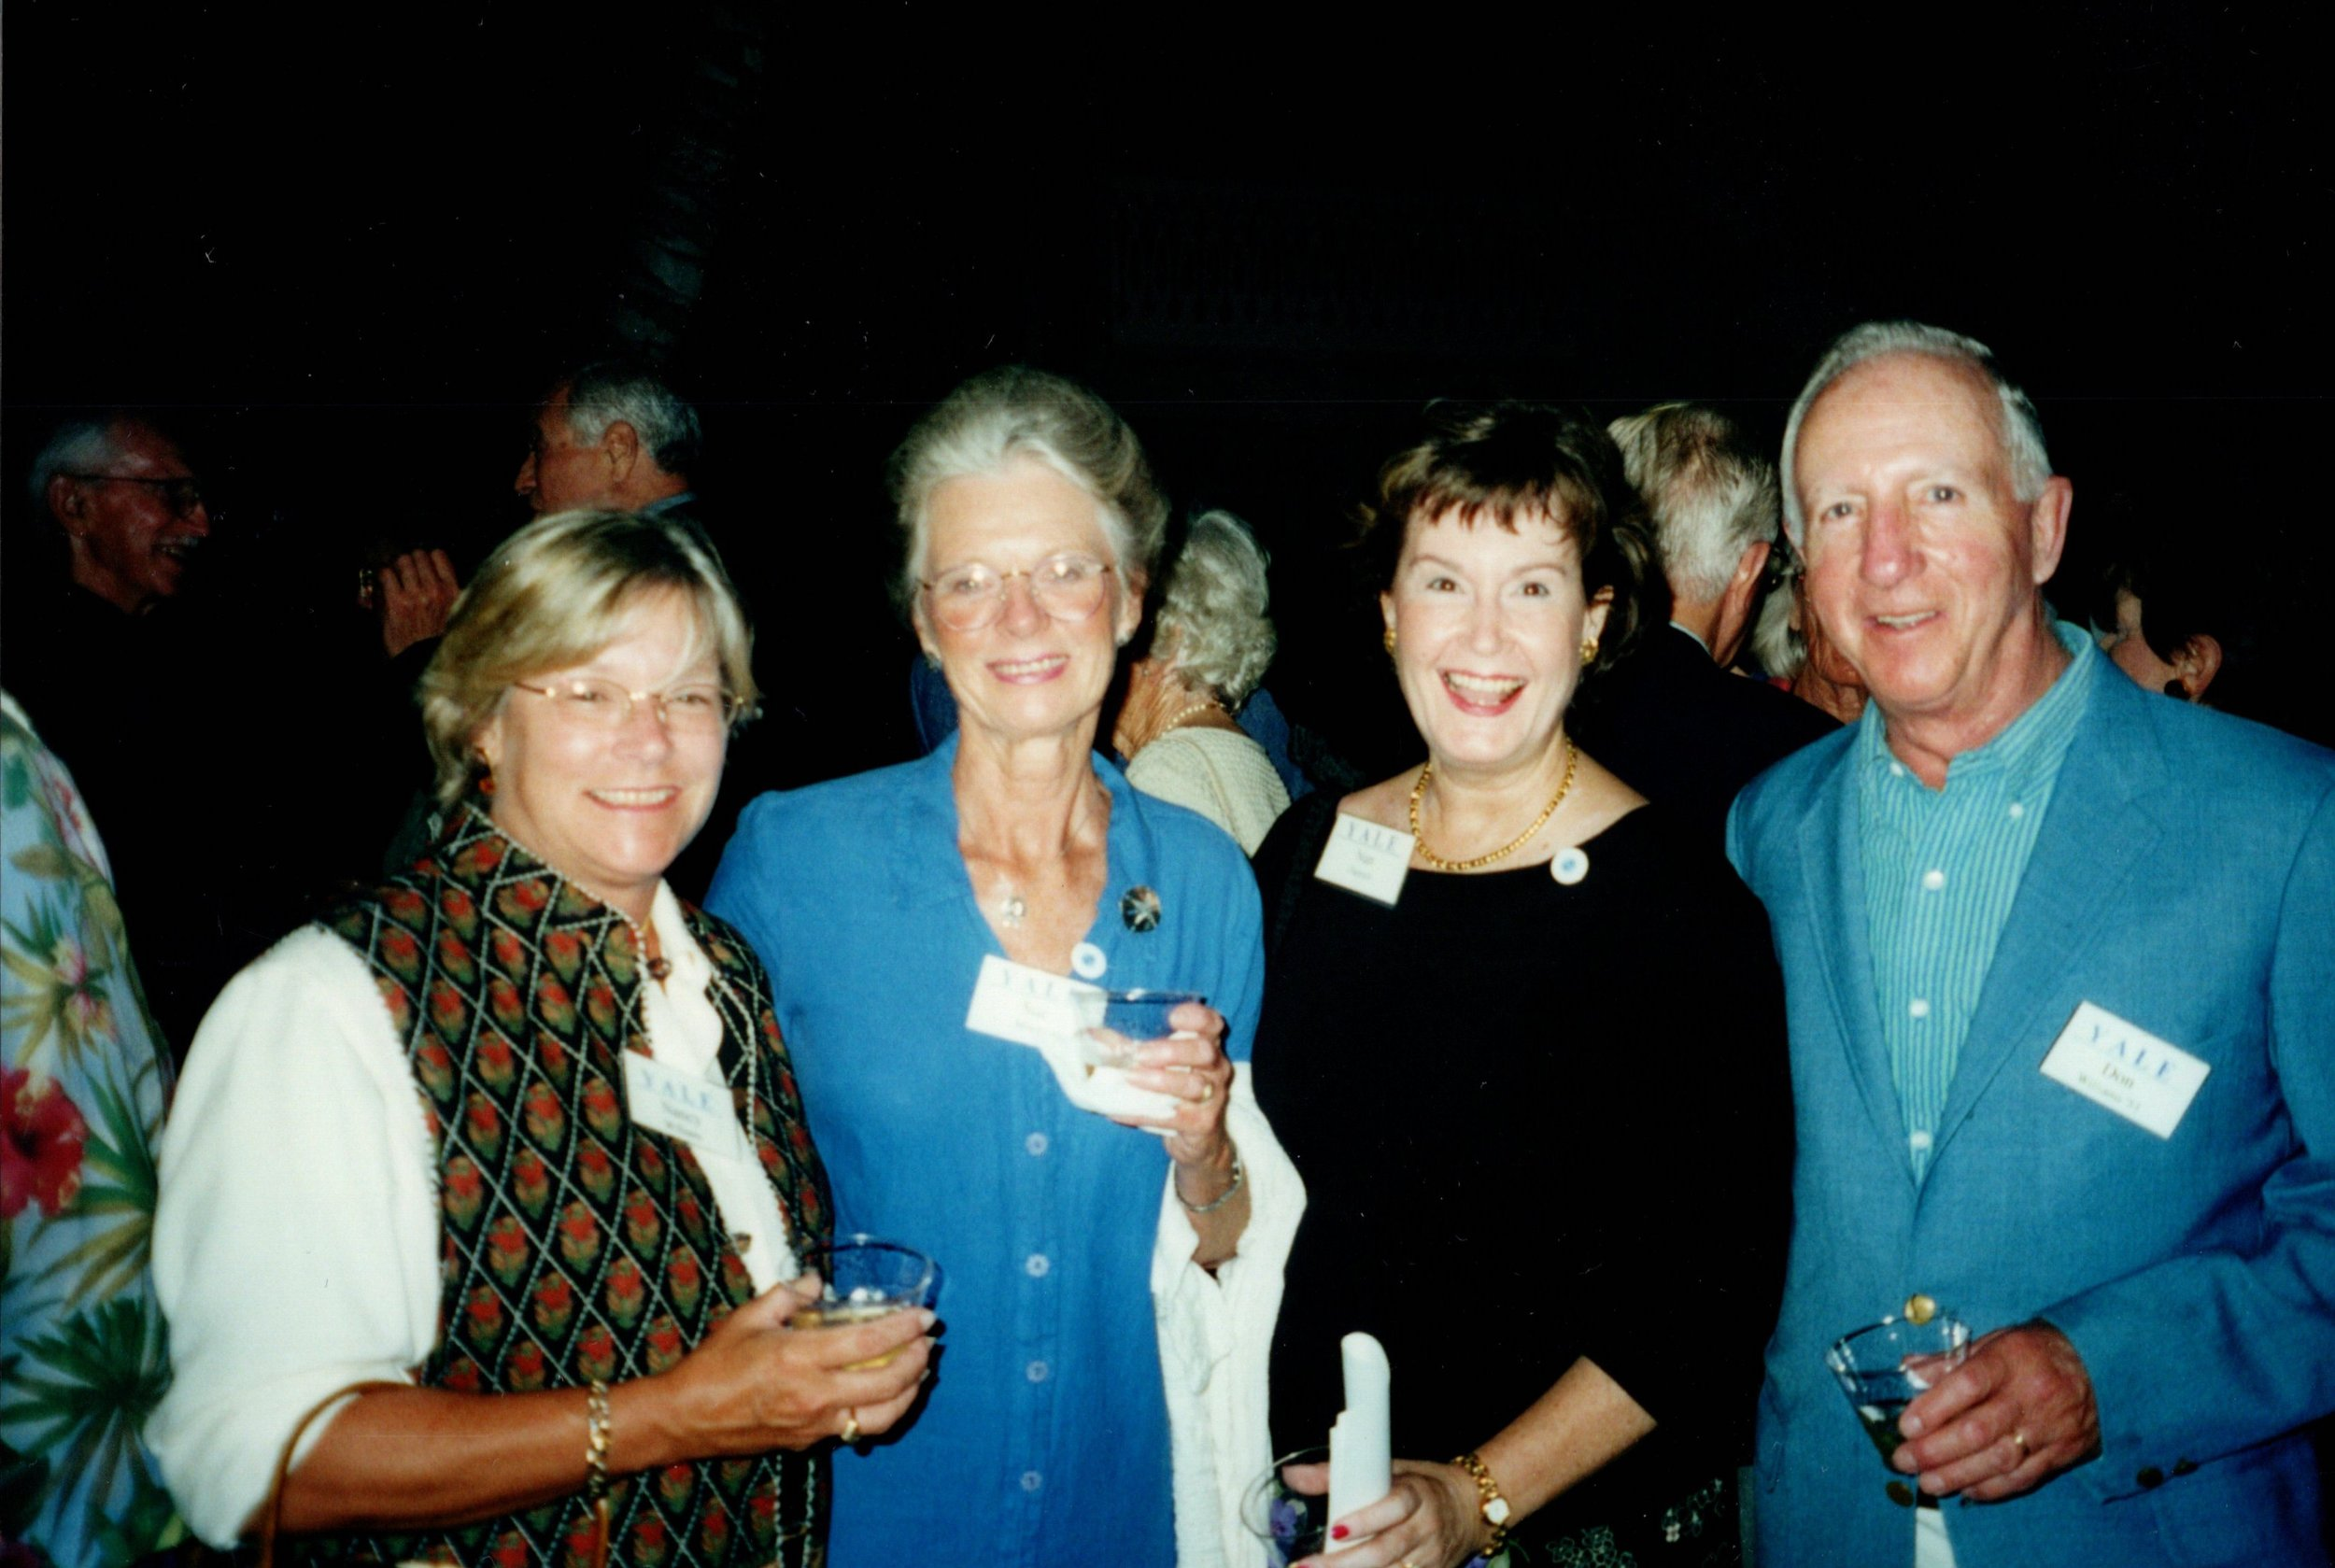 UNKNOWN DATE - WELCOME BACK PARTY - UNKNOWN LOCATION 10.jpg